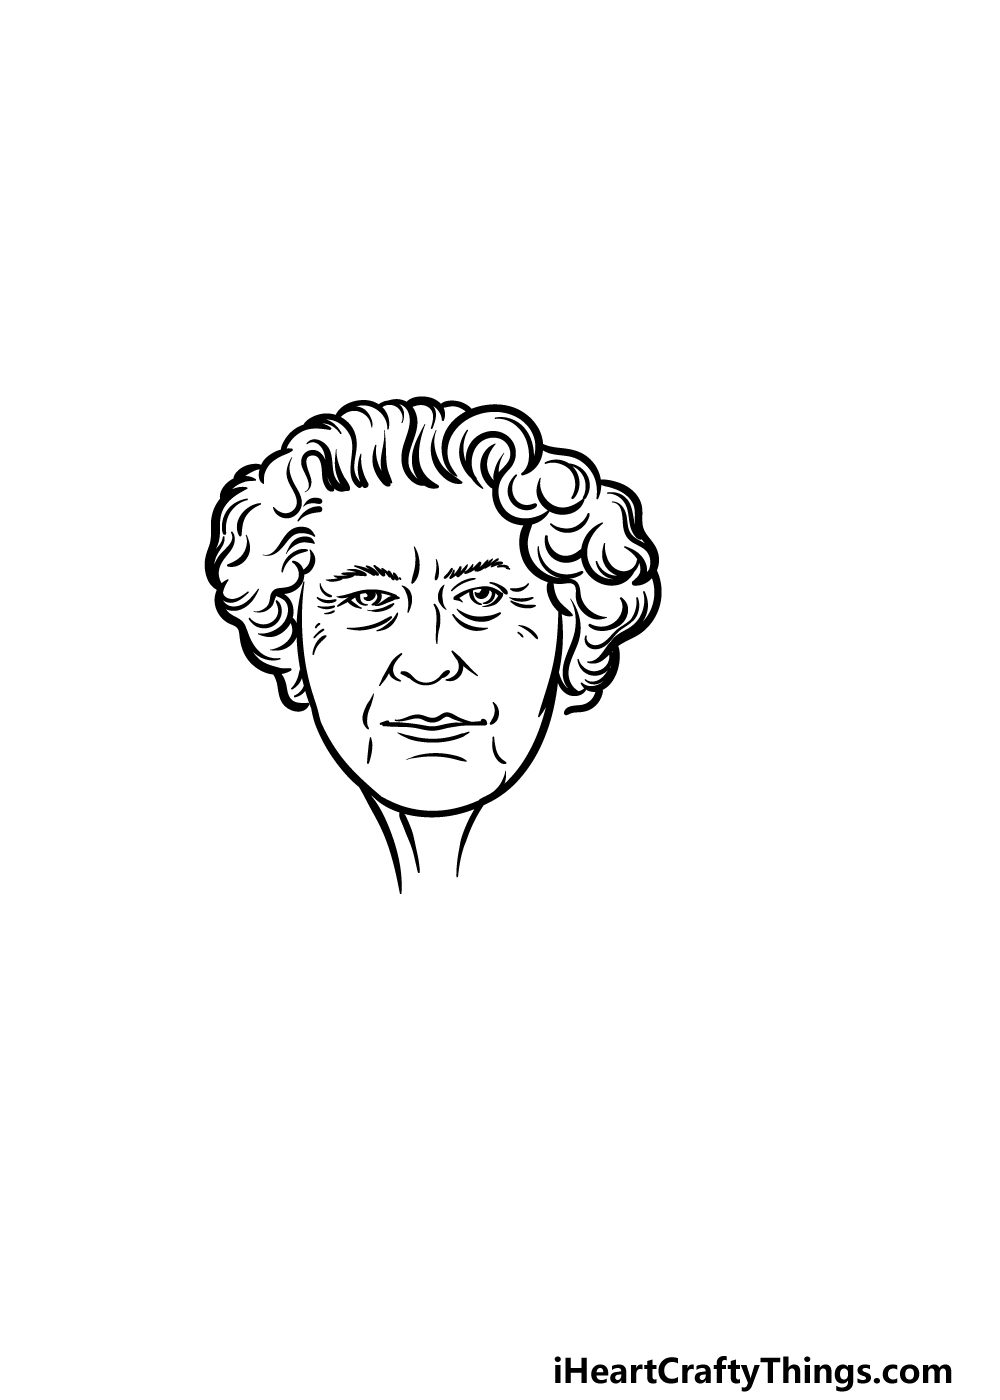 drawing the Queen step 4